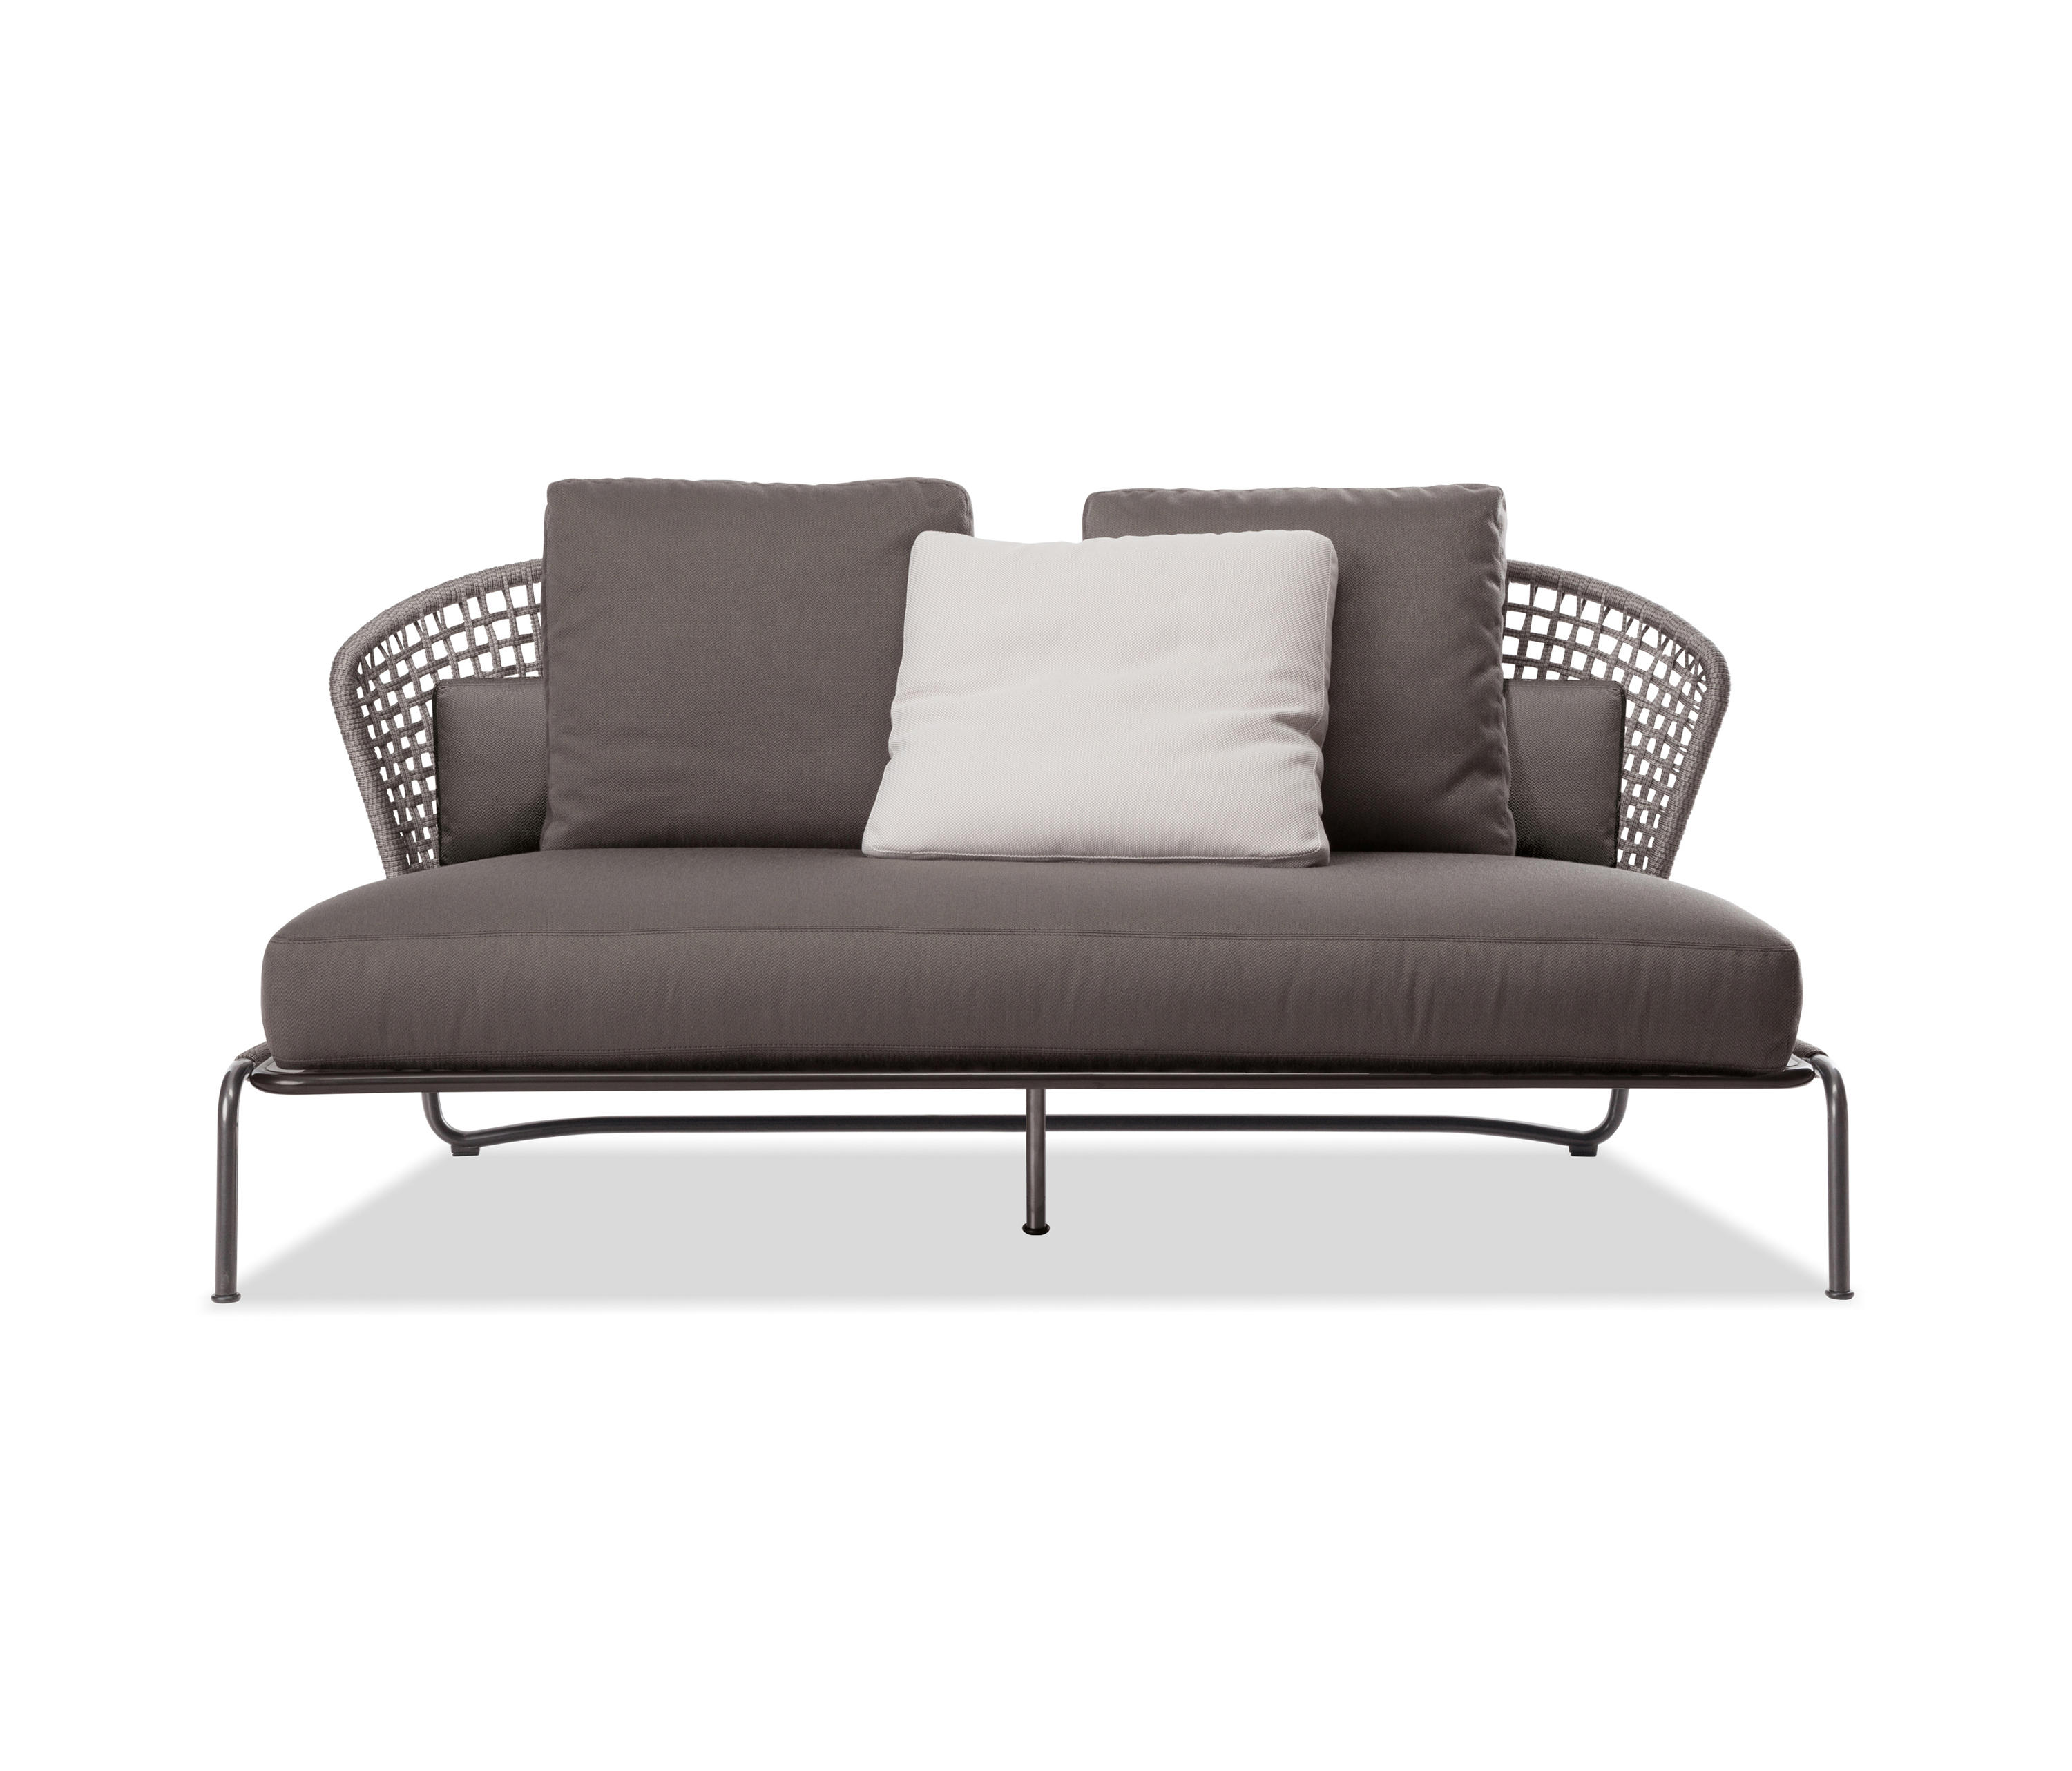 Outdoor Sofa Aston